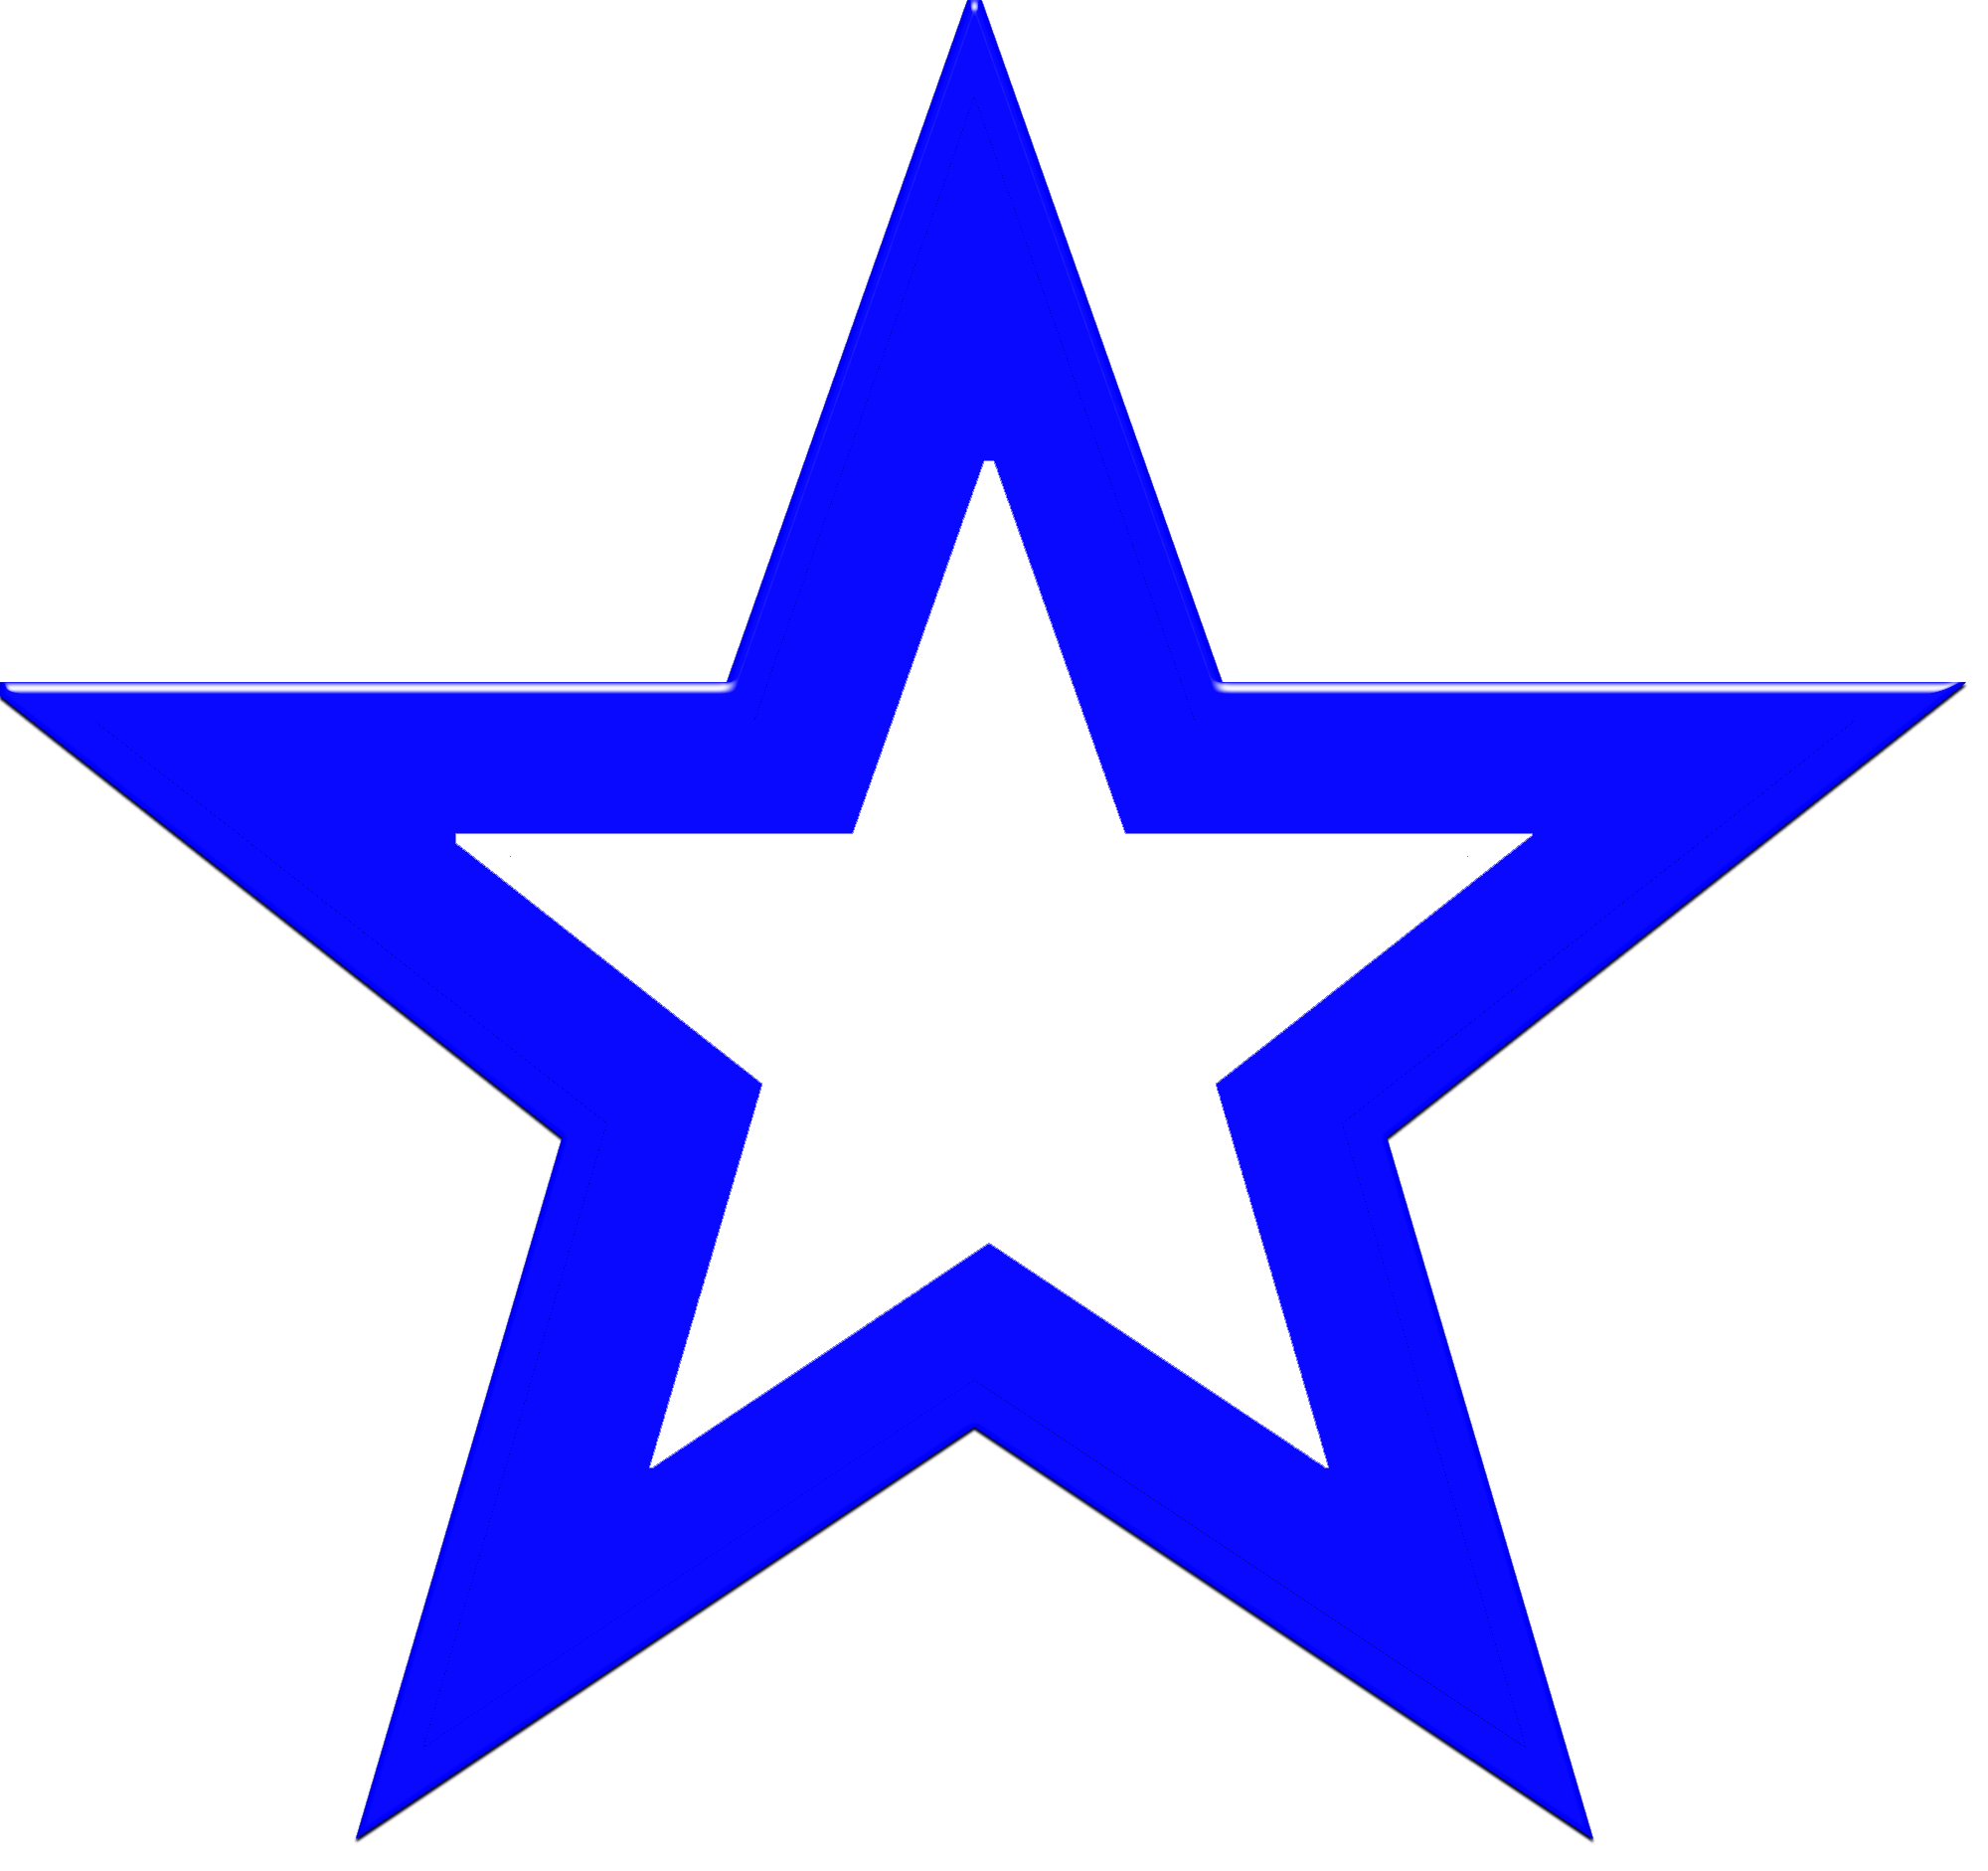 Star background clipart blue clip library stock US All Star Federation: Information Center clip library stock